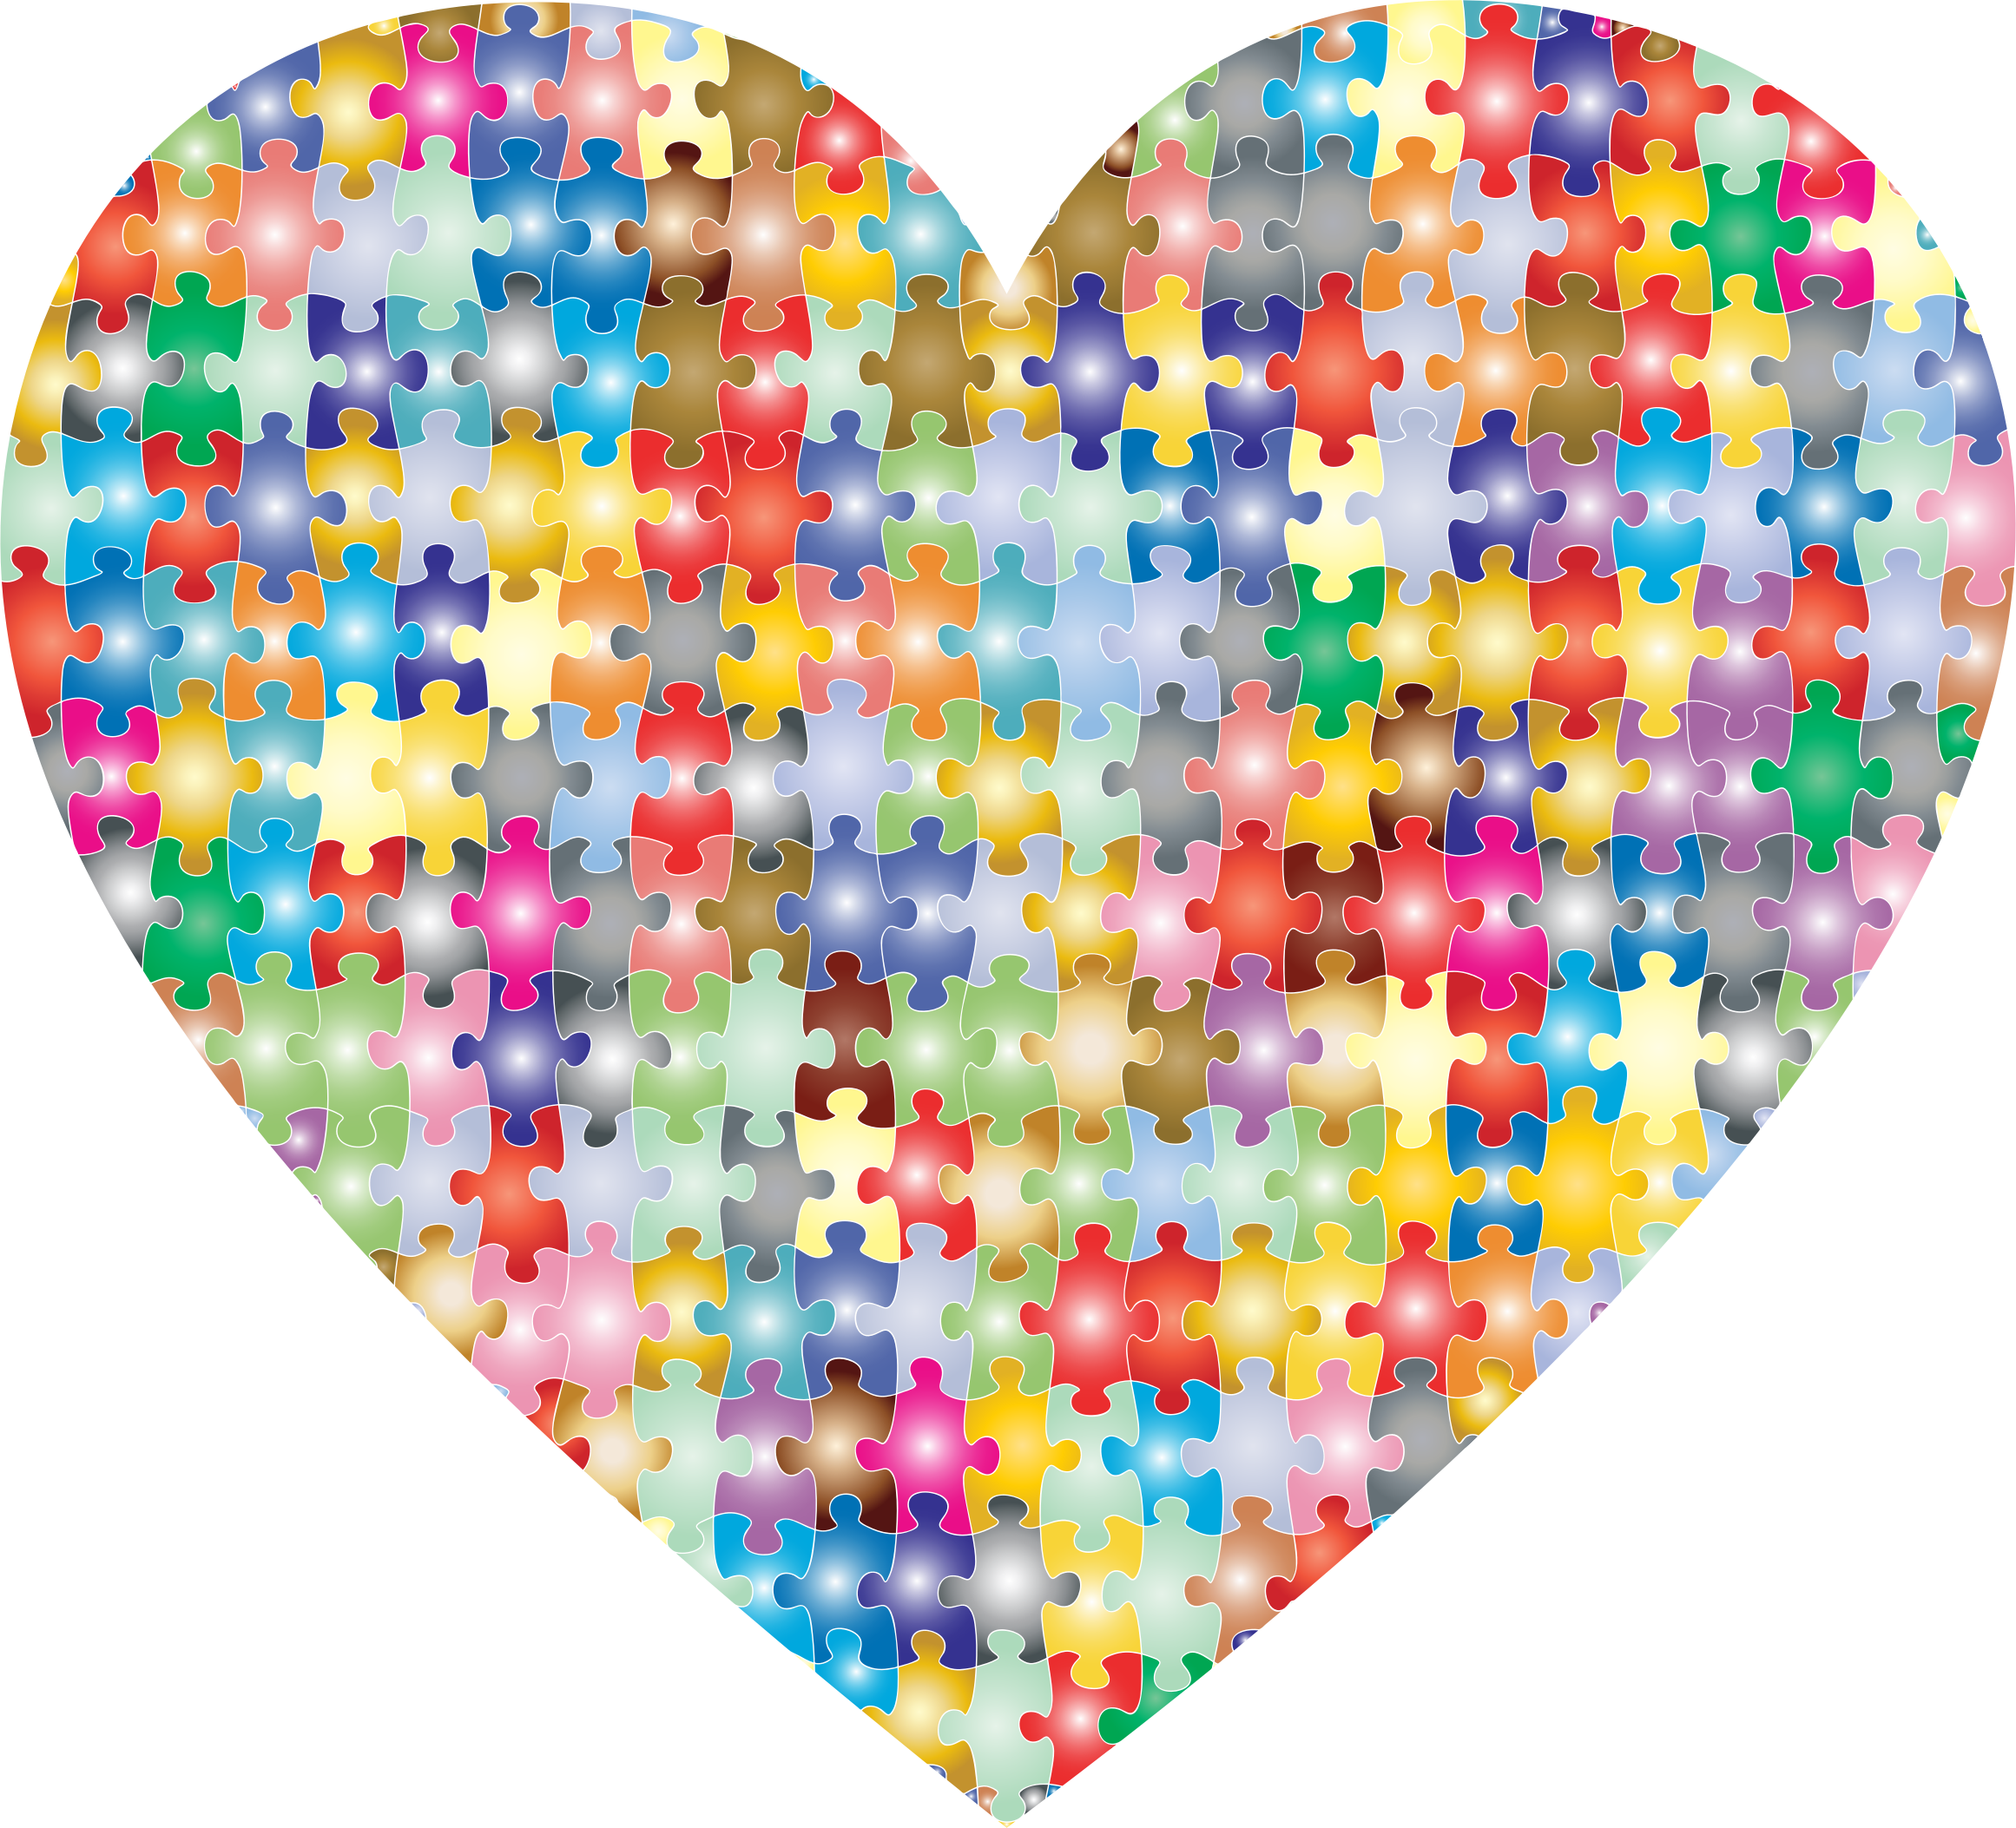 Heart puzzle clipart image free library Clipart - Colorful Puzzle Heart 3 image free library